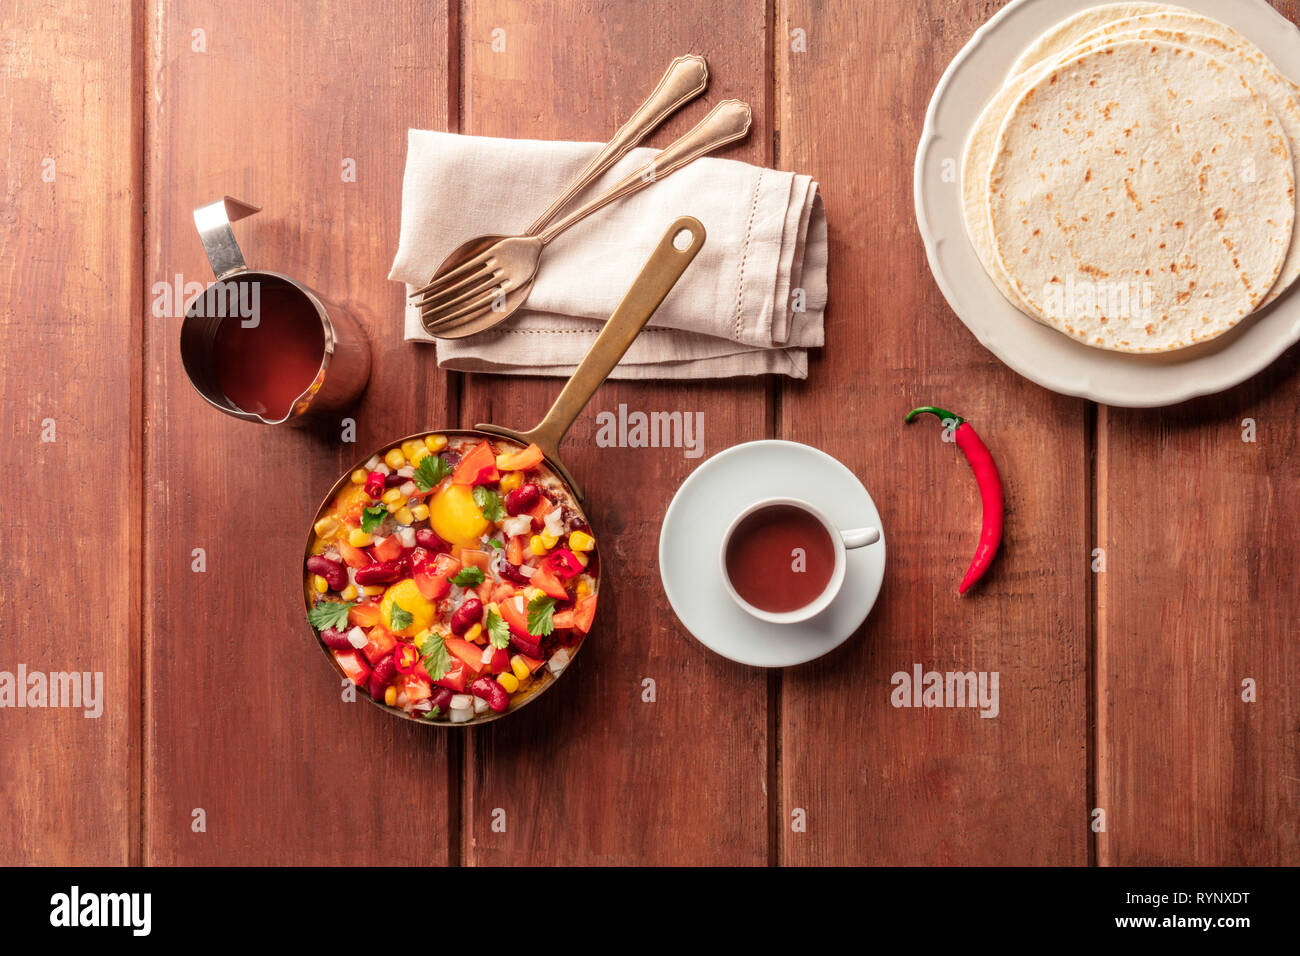 Mexican breakfast. Huevos rancheros, the fried eggs, shot from the top with the pico de gallo salad, hot chocolate, and tortillas - Stock Image